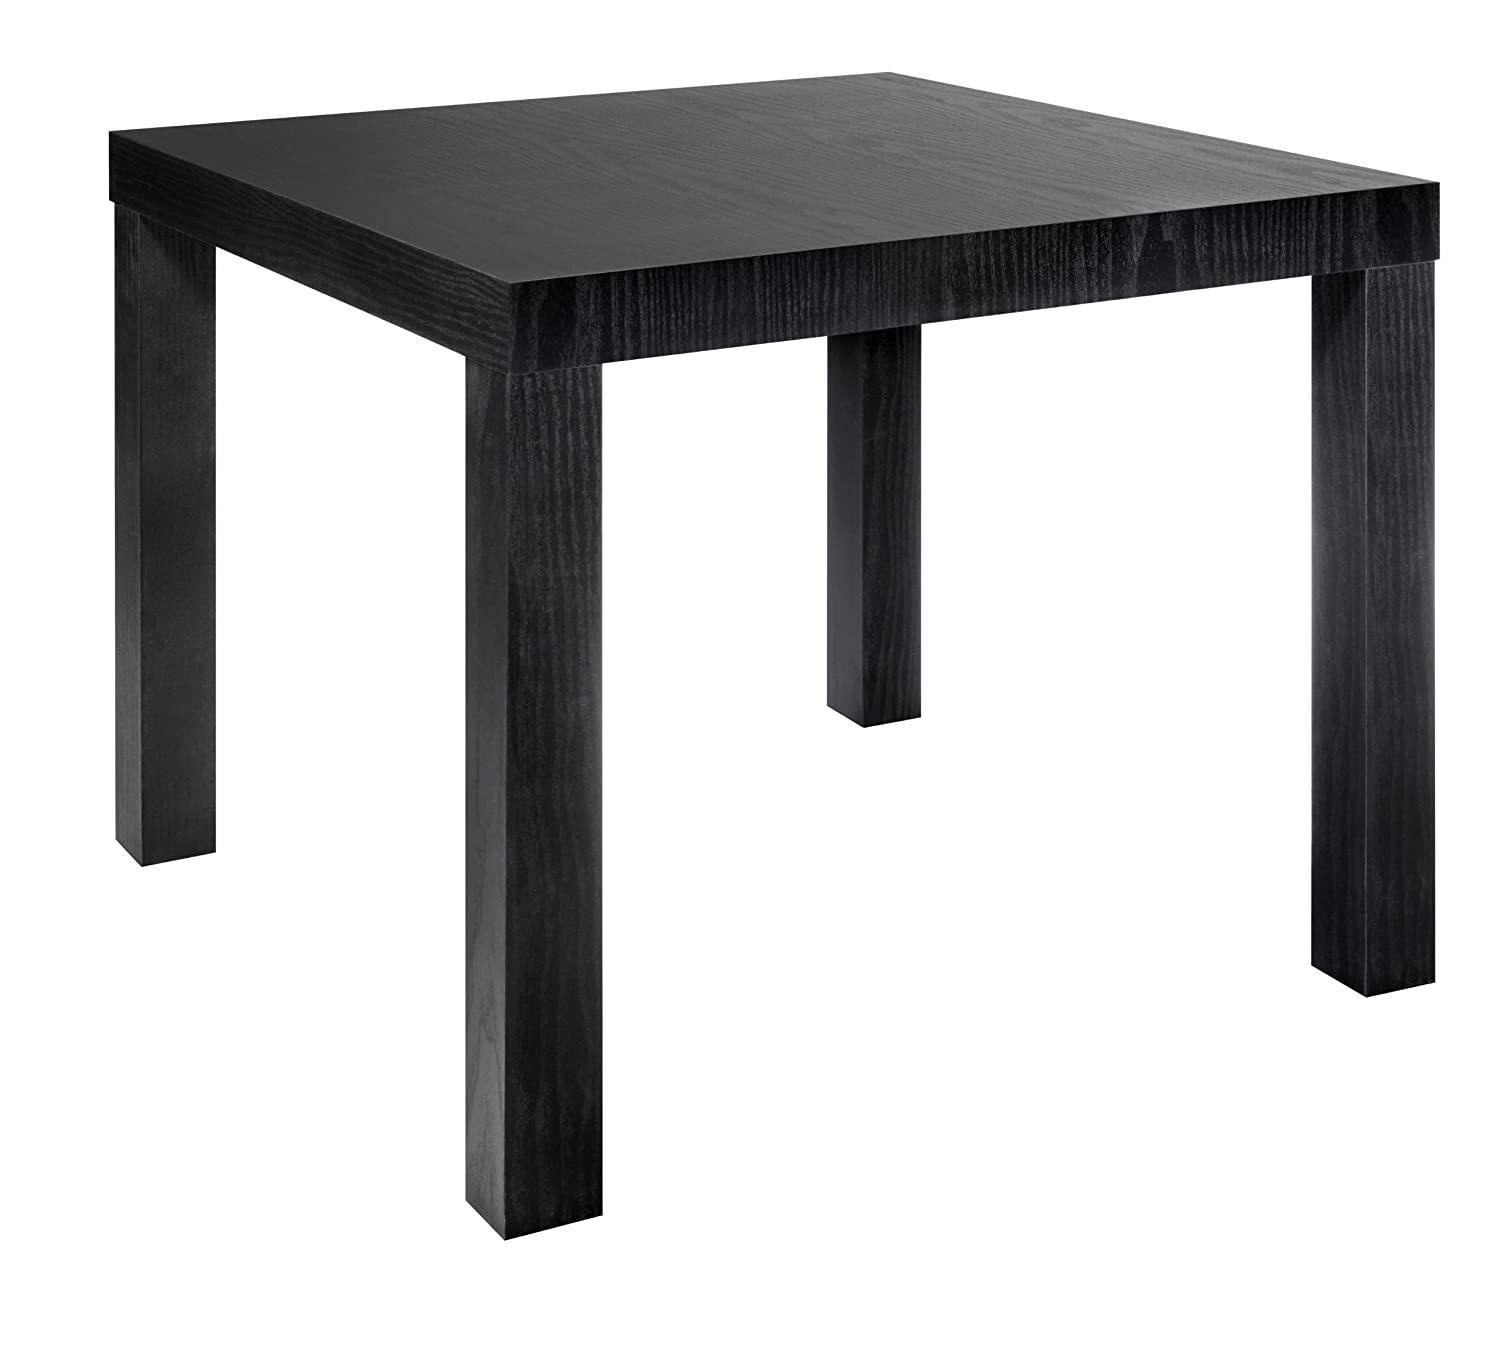 Black Modern Side Table Modern Style Black Wood Grain End Table Living Room